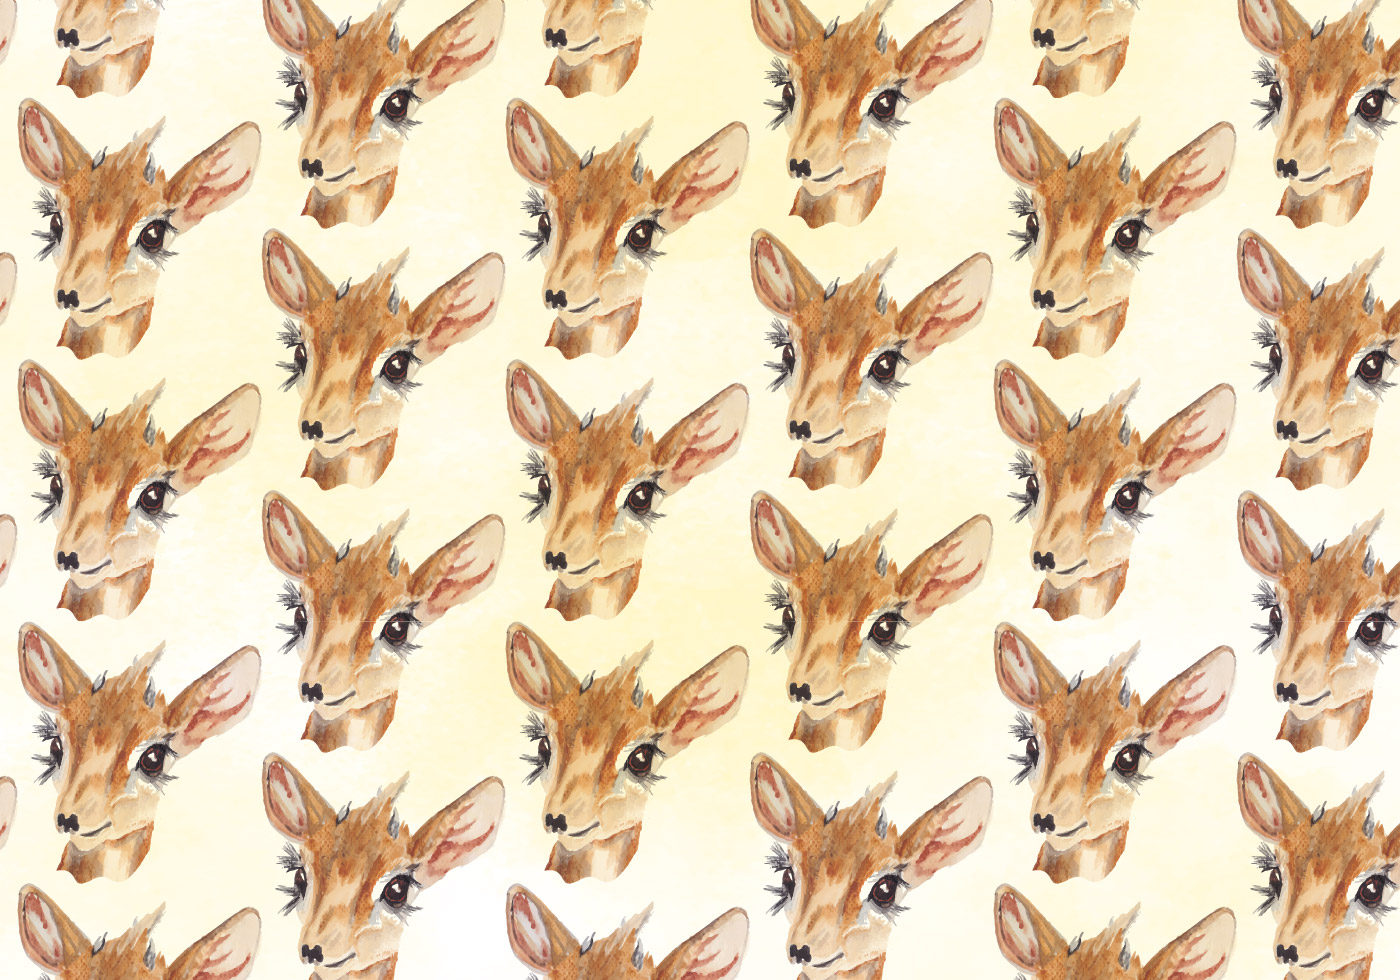 Cute Animals Wallpaper Pack Vector Deer Watercolor Pattern Download Free Vector Art